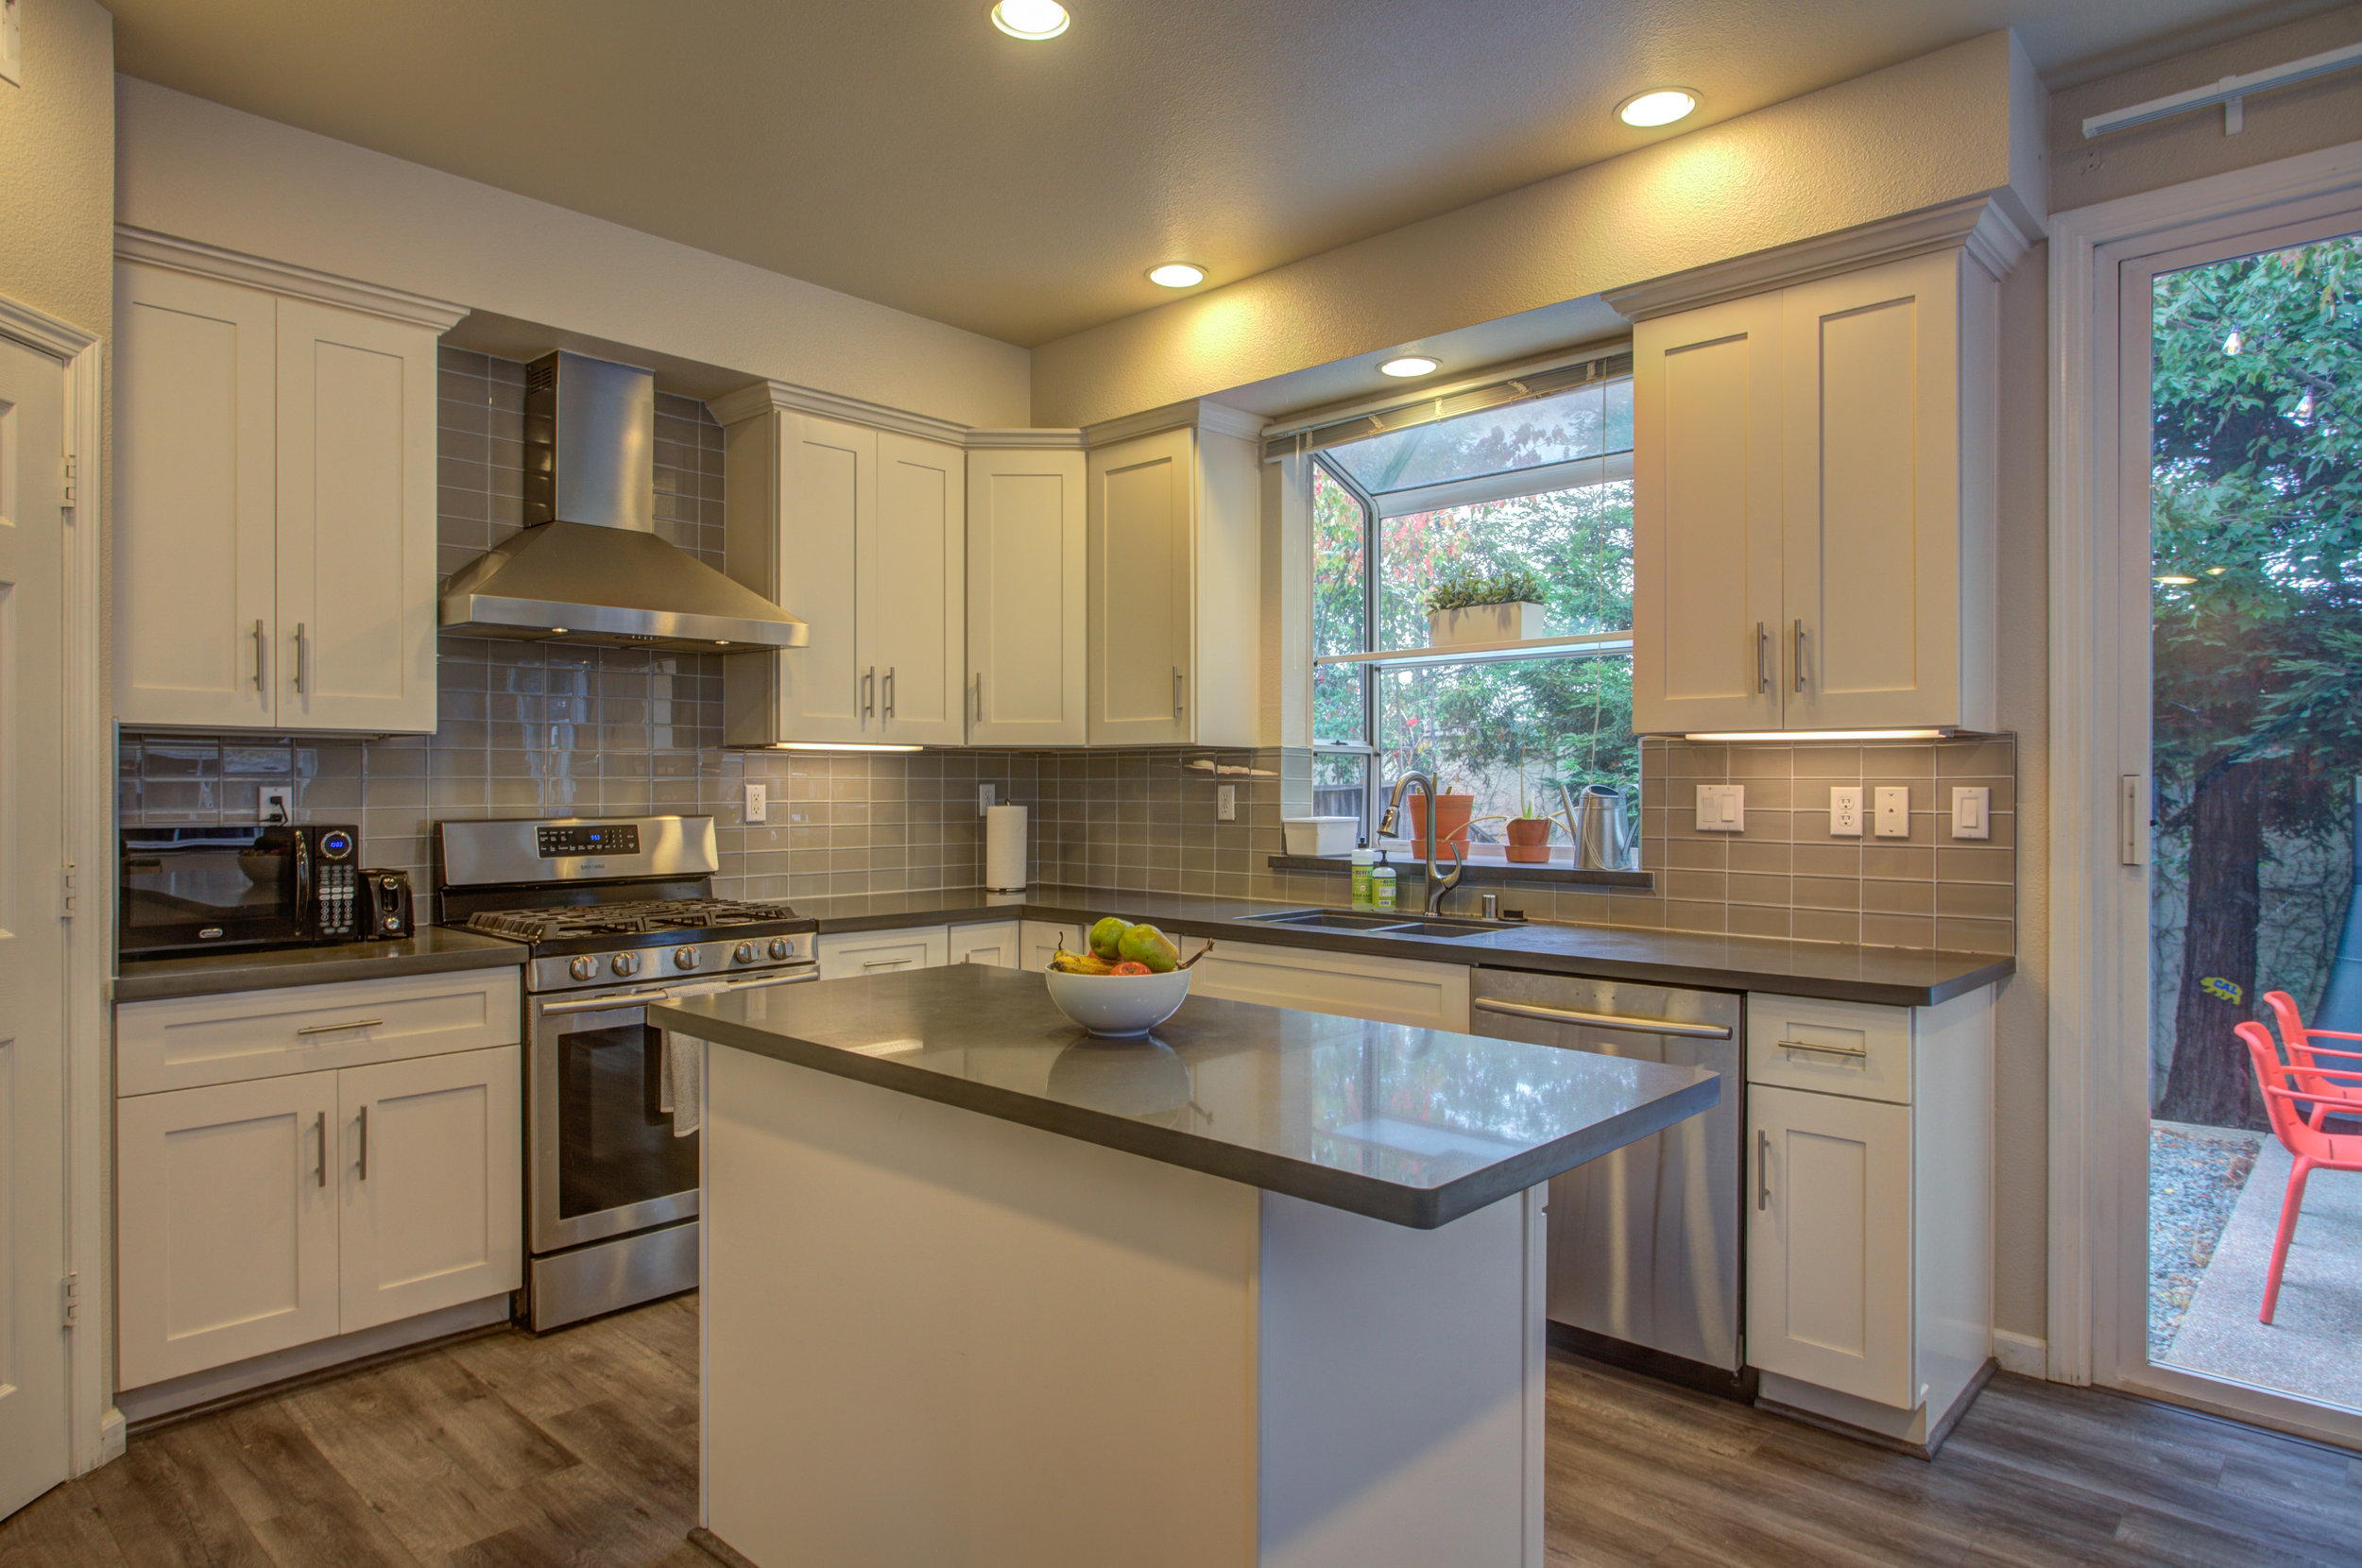 205_accolade_drive_MLS_HID1169359_ROOMkitchen.jpg